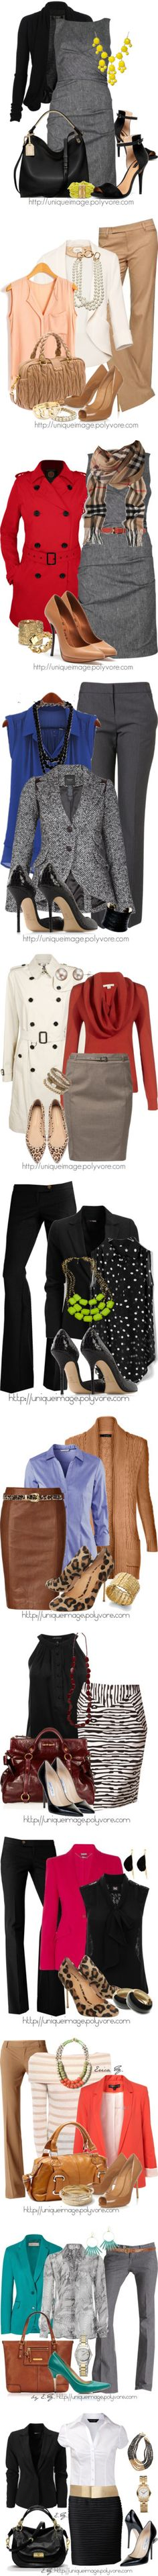 """Work Attire"" by uniqueimage on Polyvore... Adorable!"